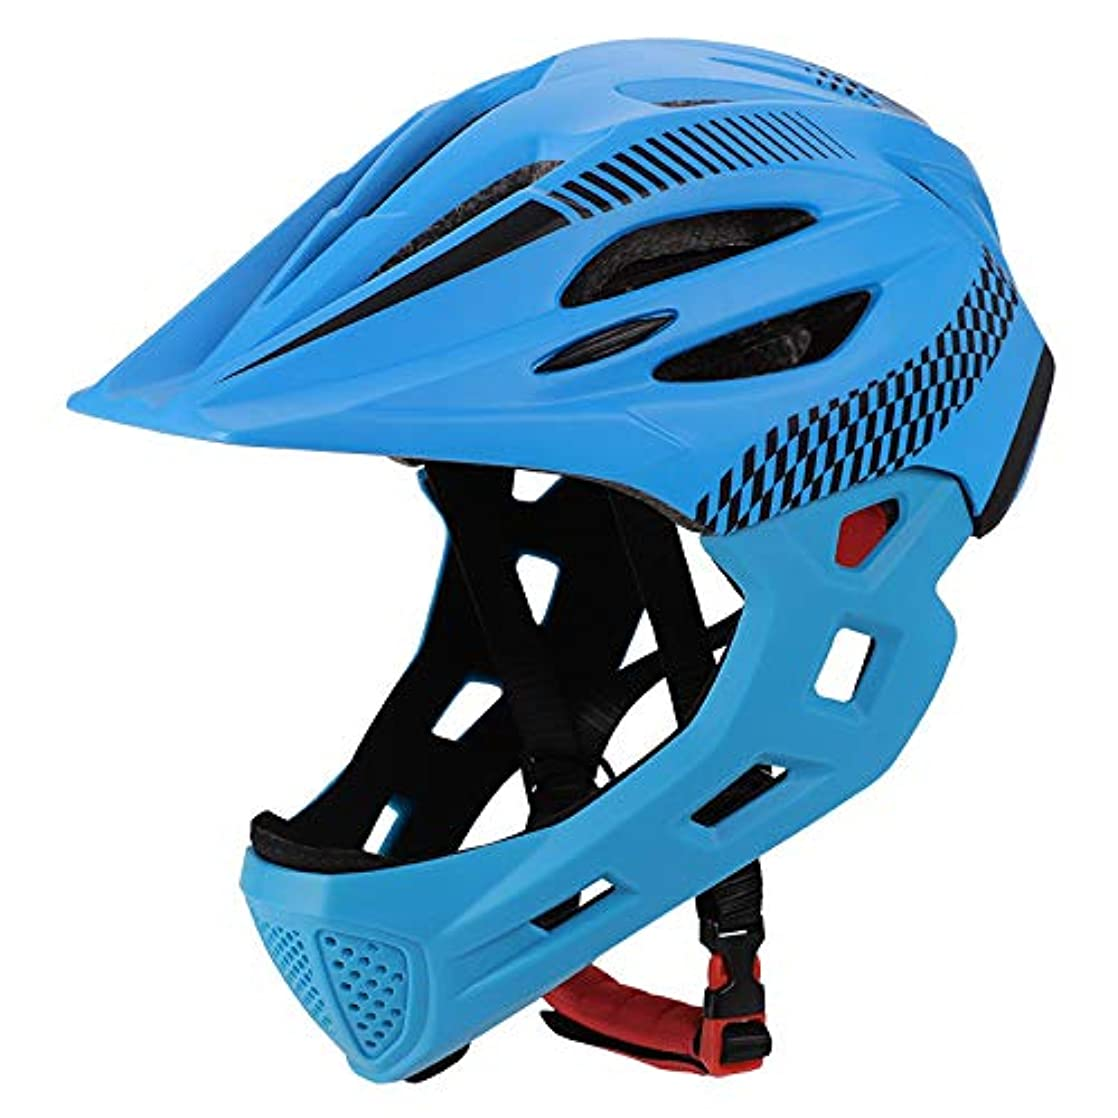 Aoile Children Bike Riding 16-Hole Breathable Helmet Detachable Full Face Chin Protection Balance Bicycle Safety Helmet with Rear Light Blue Black gkkvtair79940